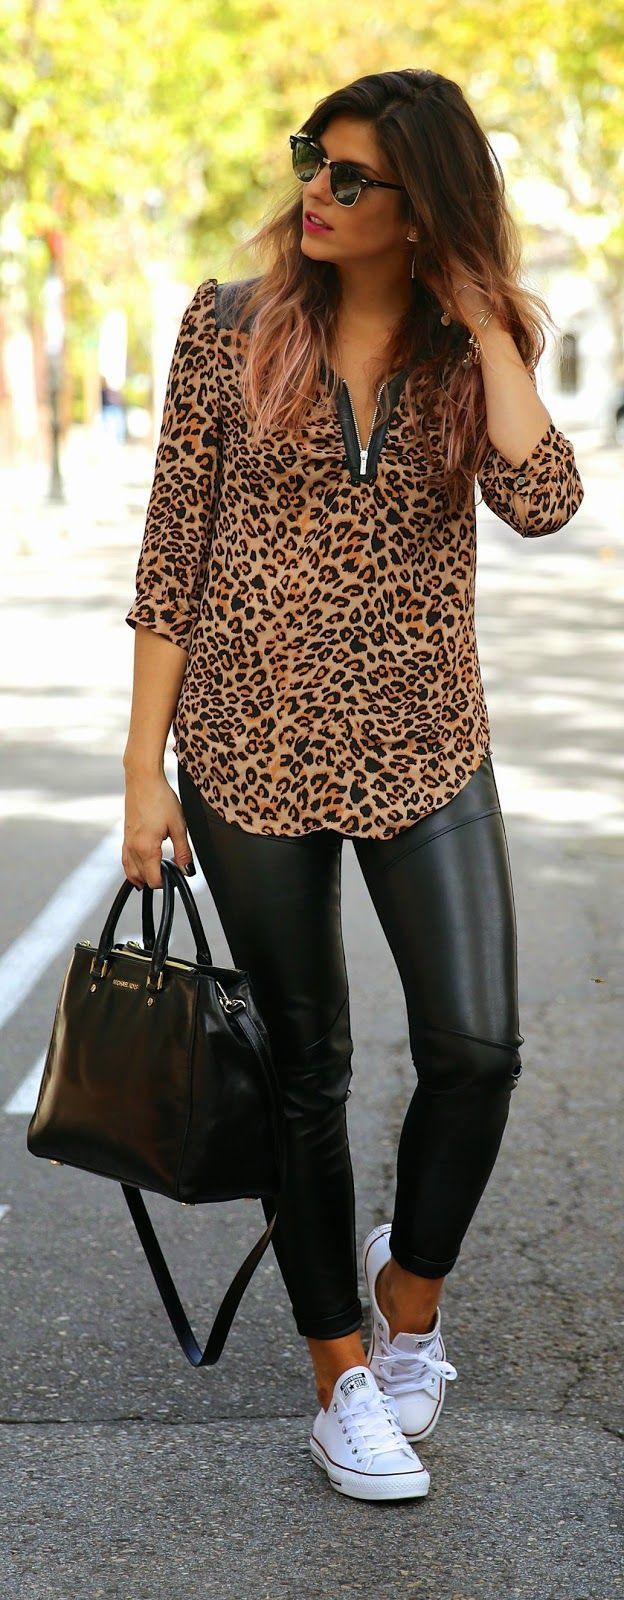 Leopard Top and Black Leggings